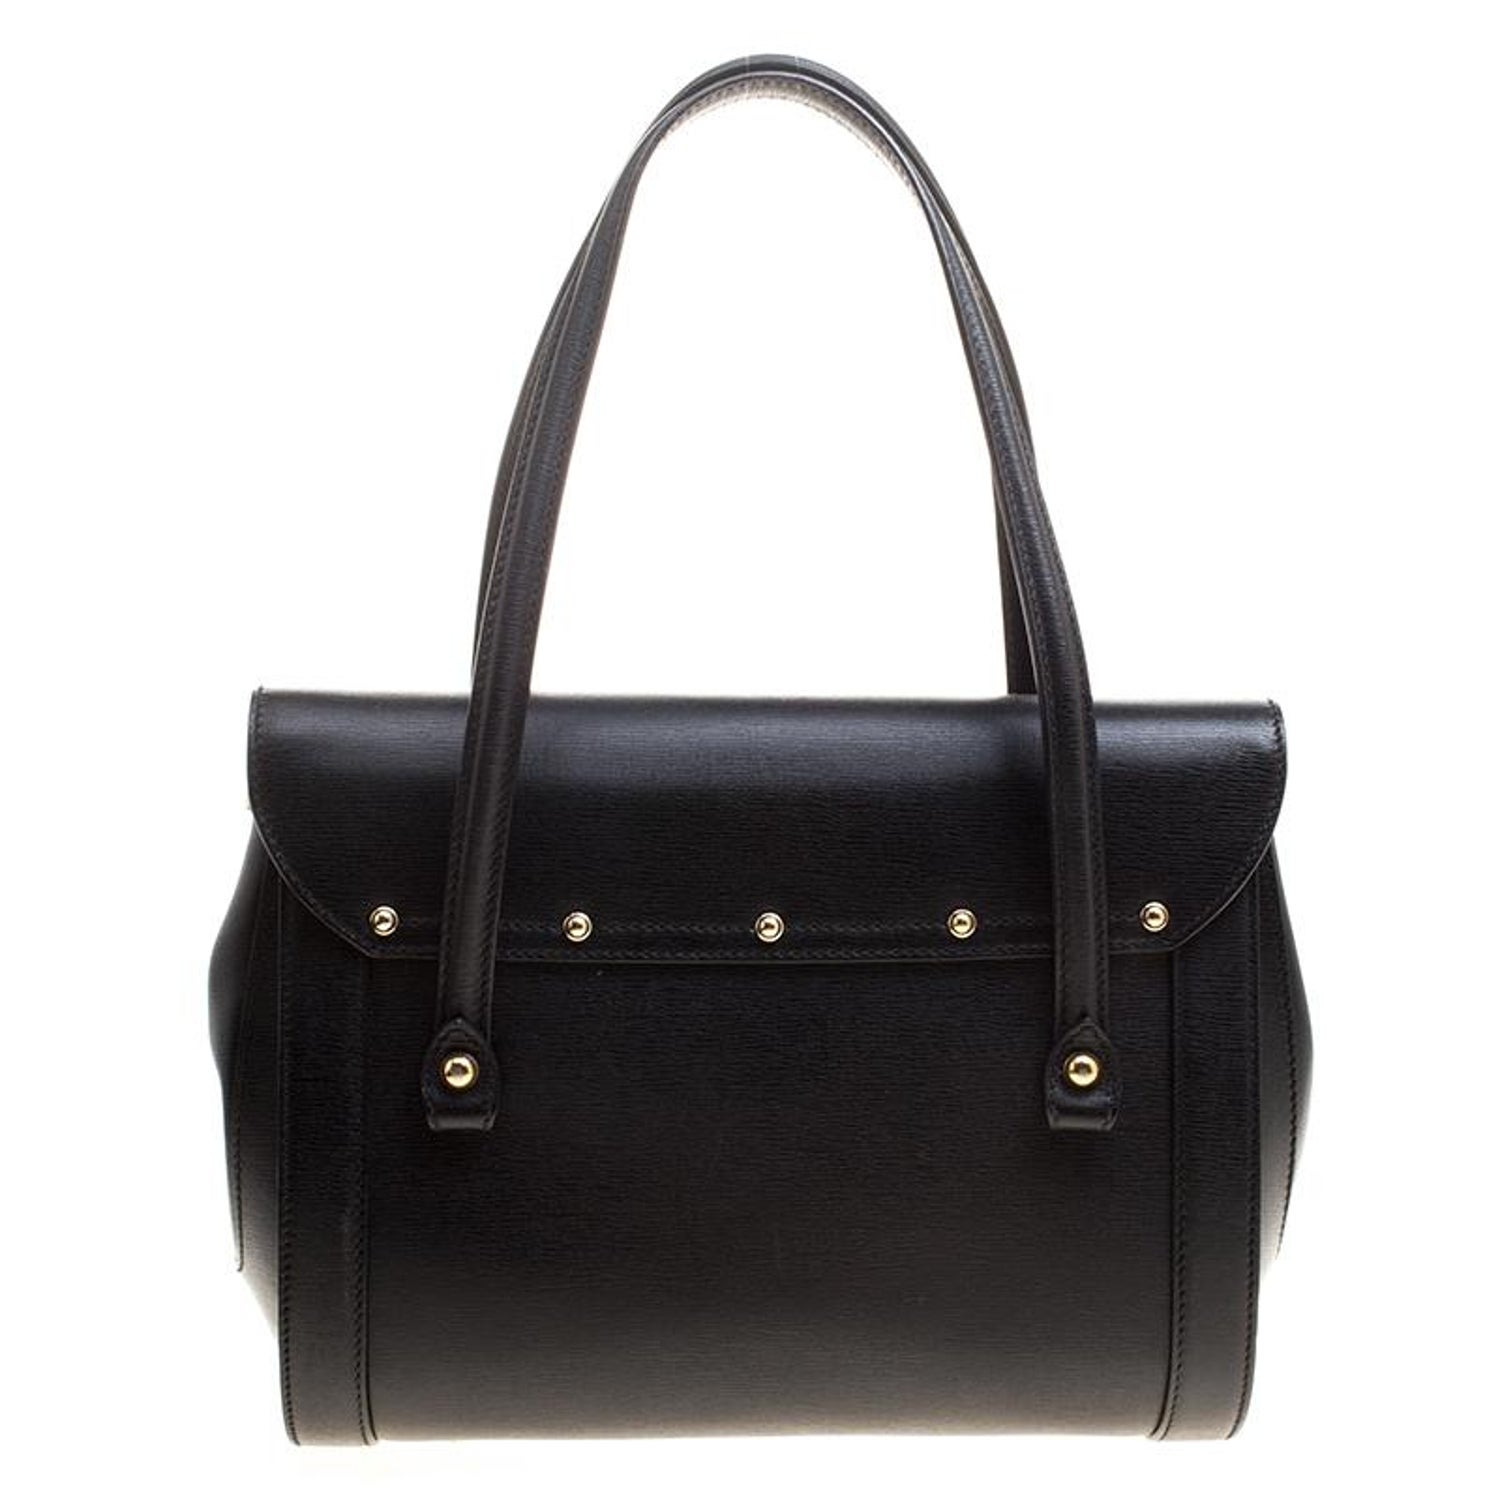 a432e6cdfbf Gucci Black Leather Small Bamboo Top Handle Bag At 1stdibs. Gg Marmont  Velvet ...